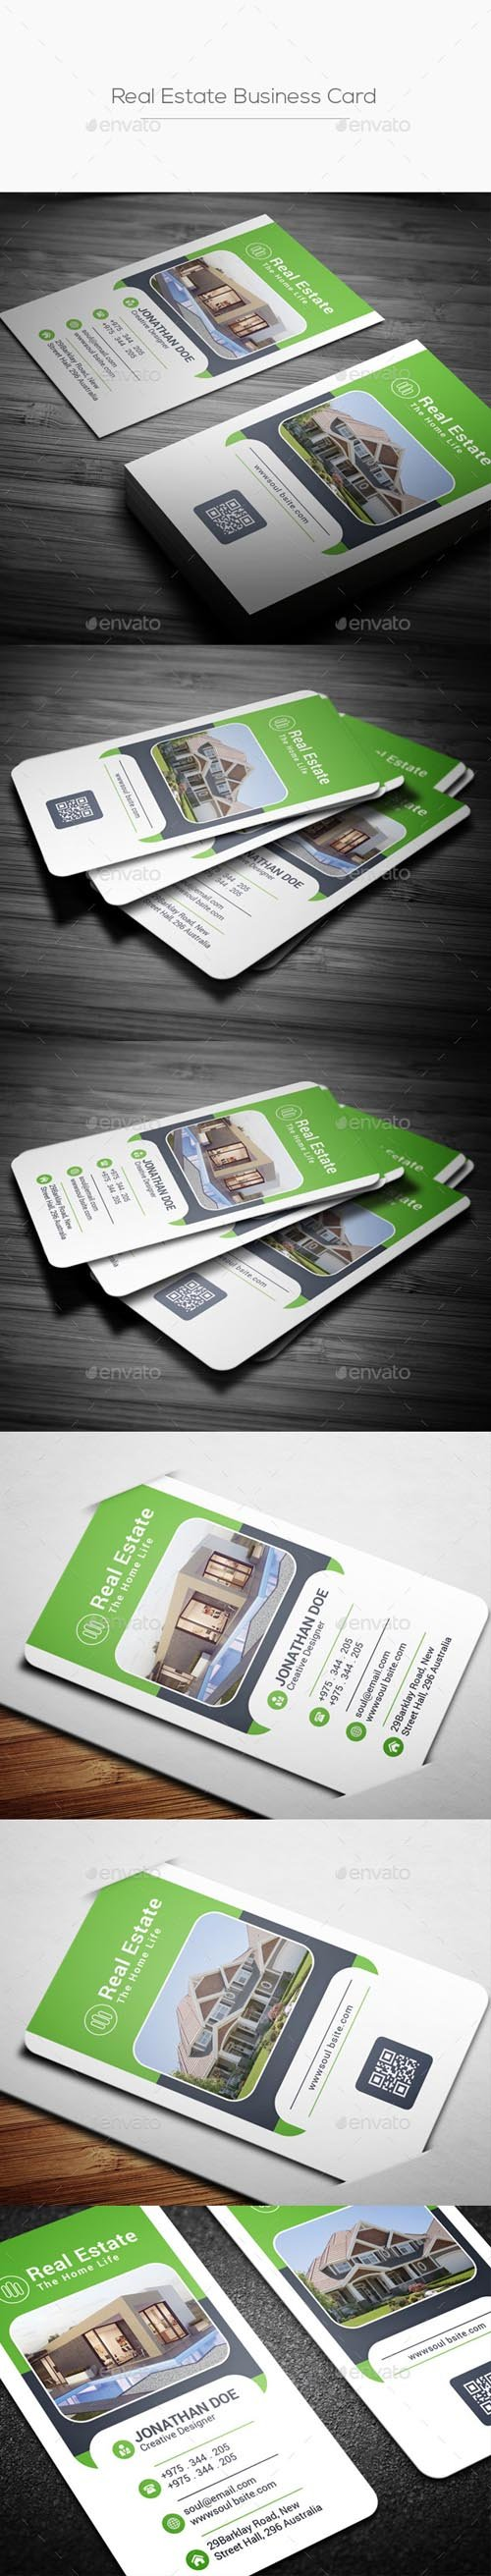 Real Estate Business Card 20215226